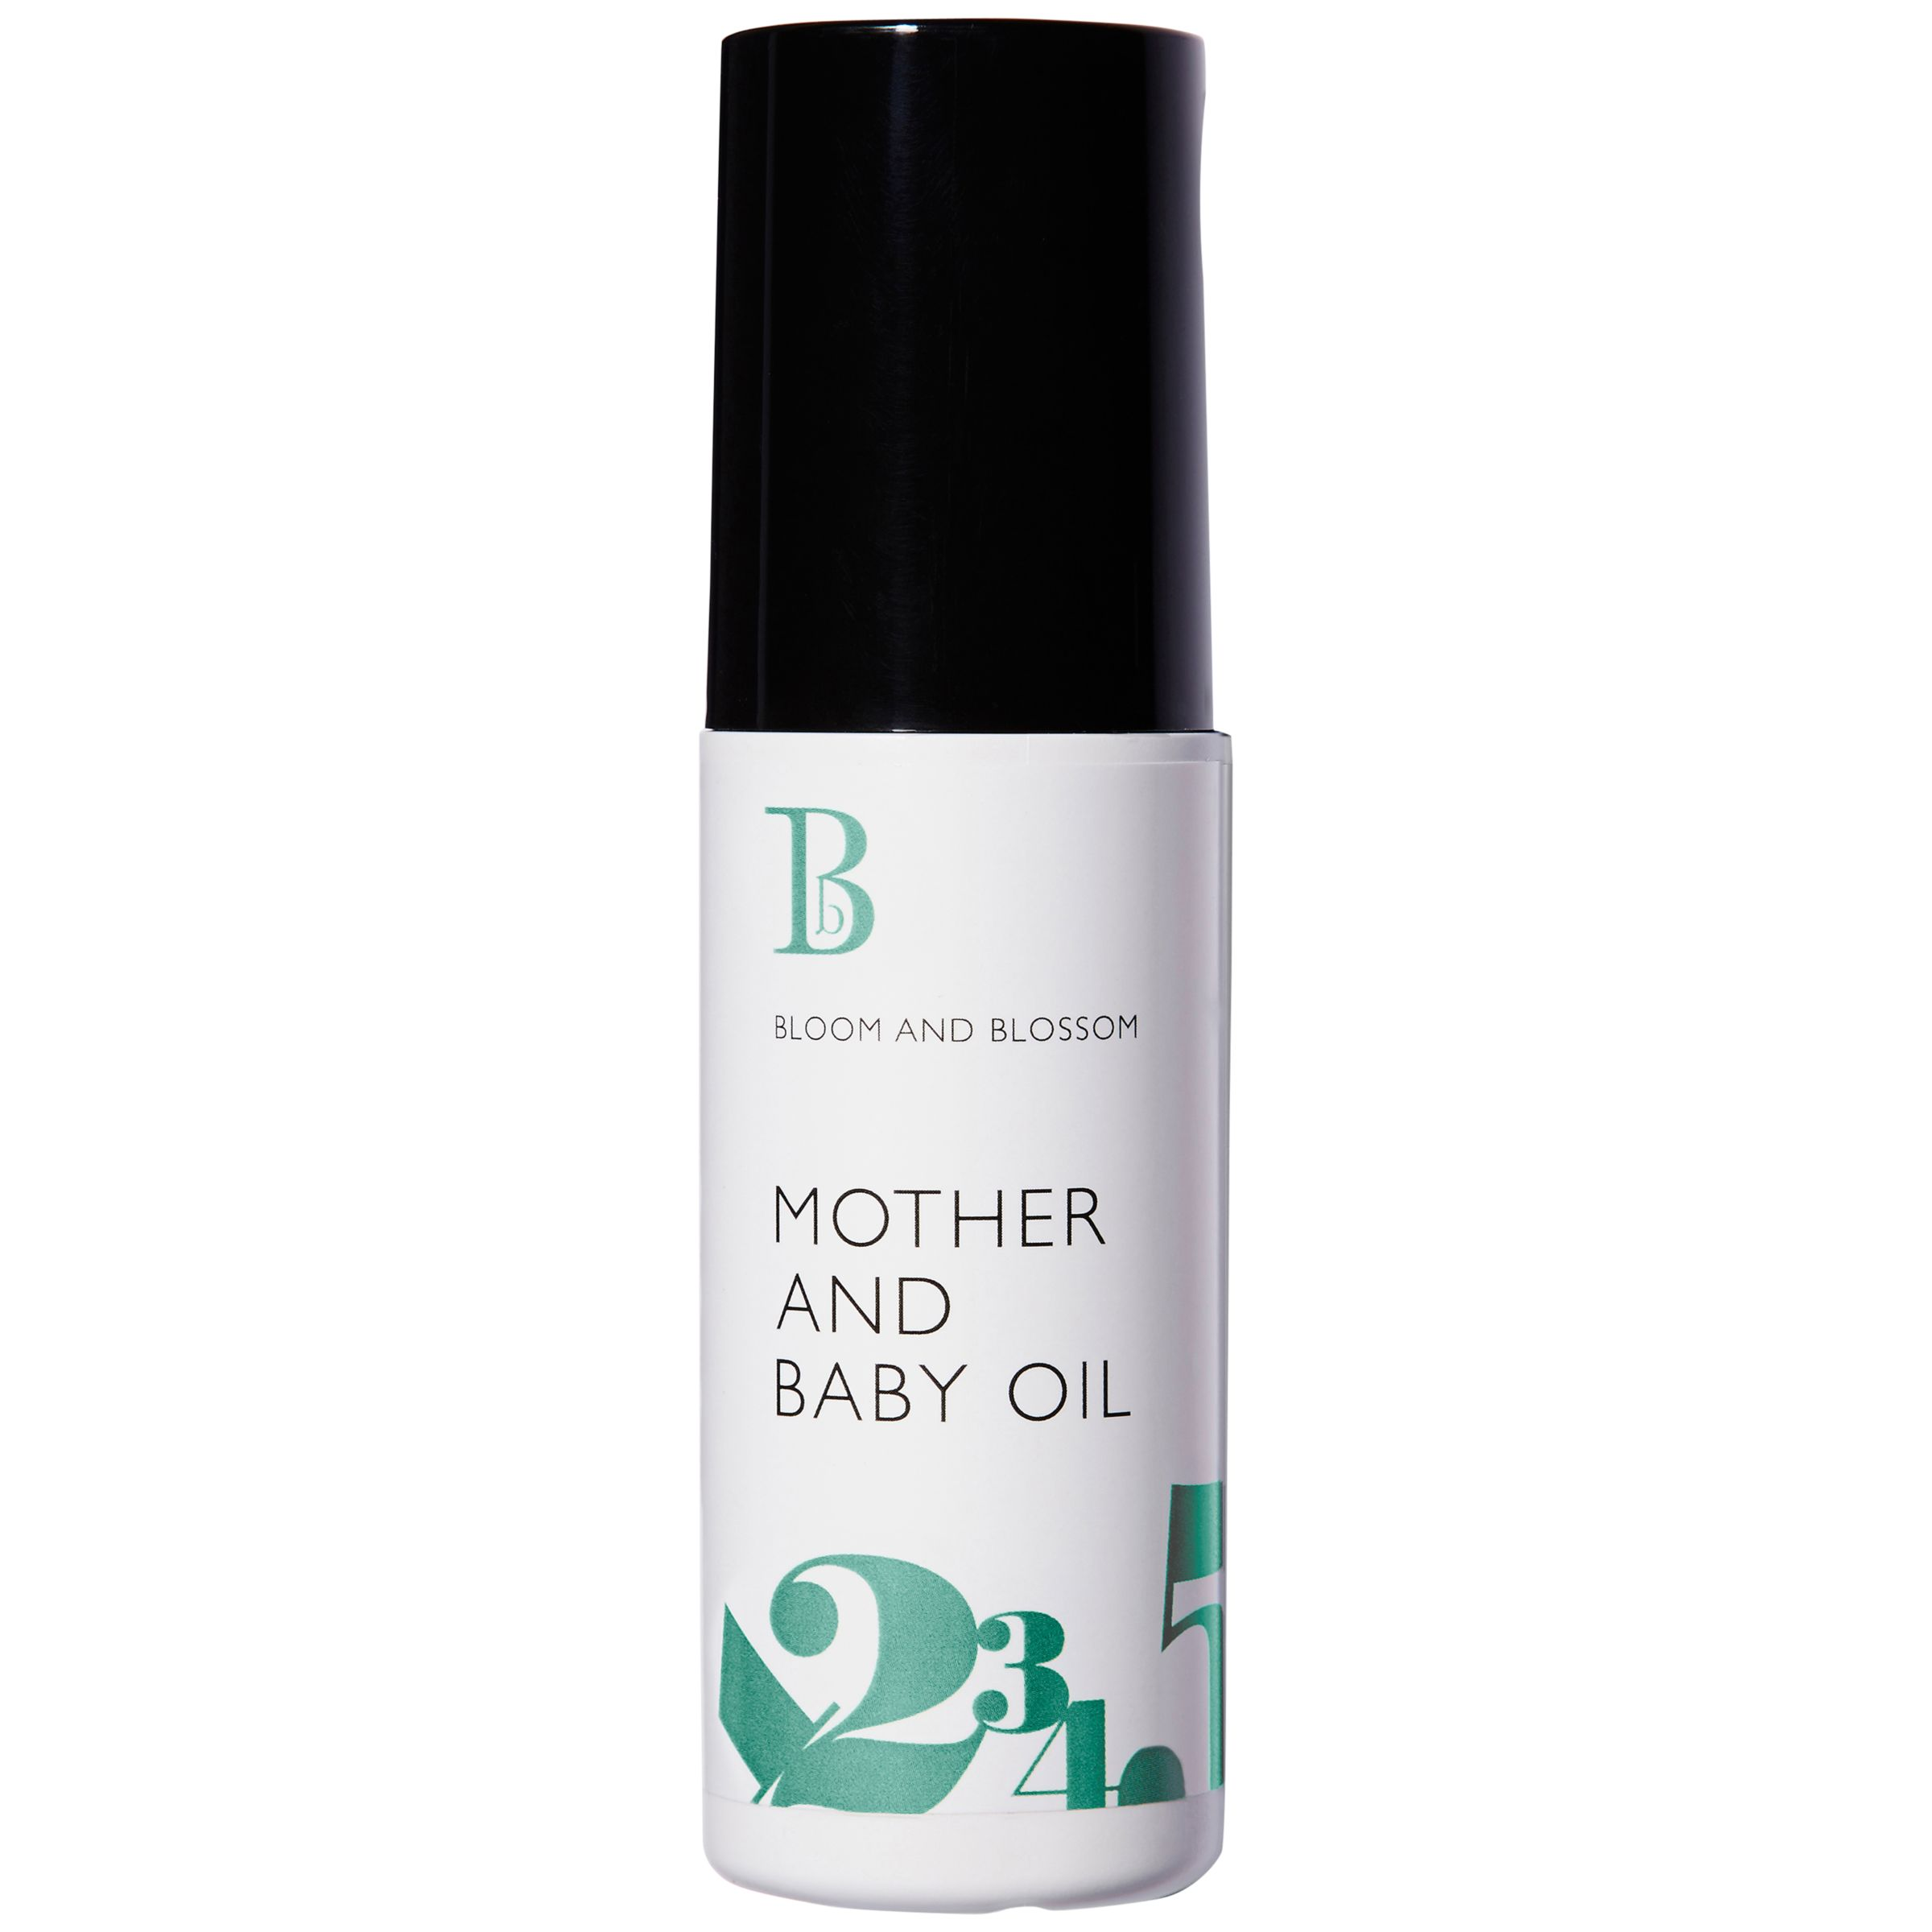 Bloom and Blossom Bloom and Blossom Mother and Baby Oil, 100ml